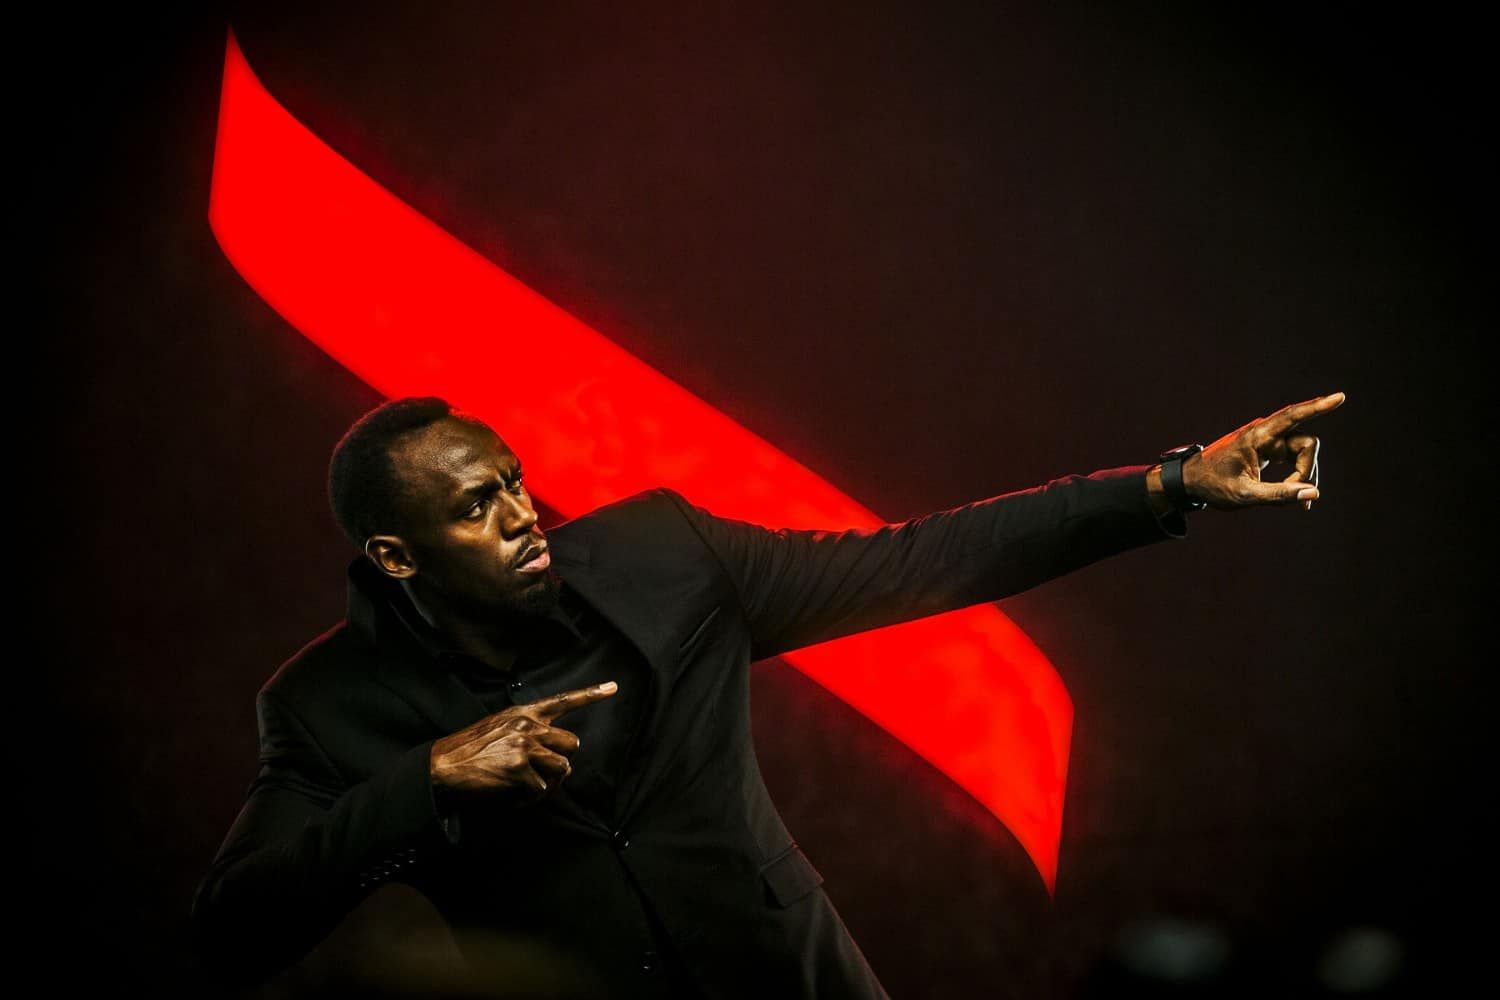 usain bolt icon of victory is appointed the new ceo of maison mumm 3 3 HR